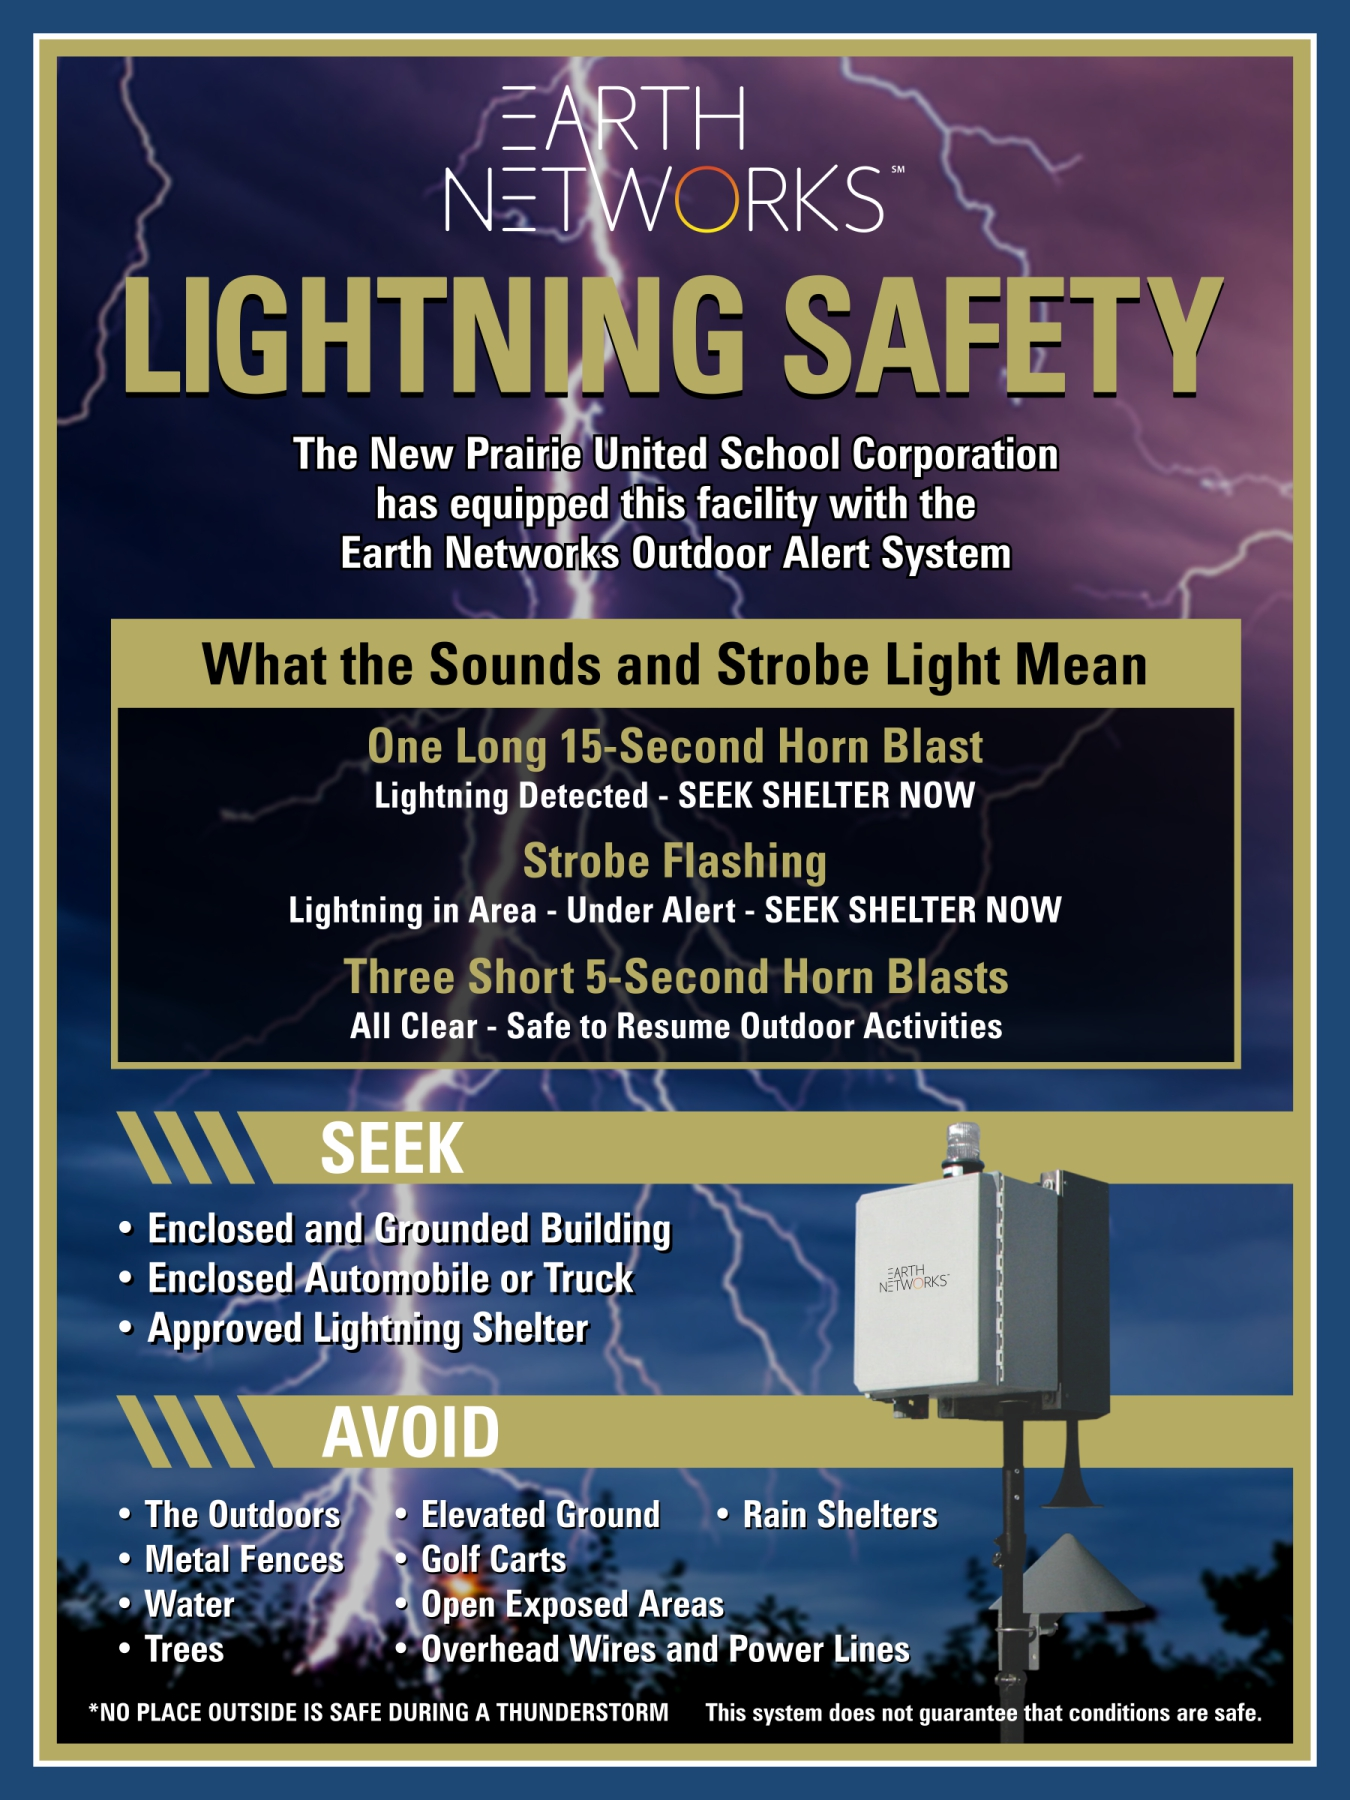 The Earth Networks lighting safety system is now complete!